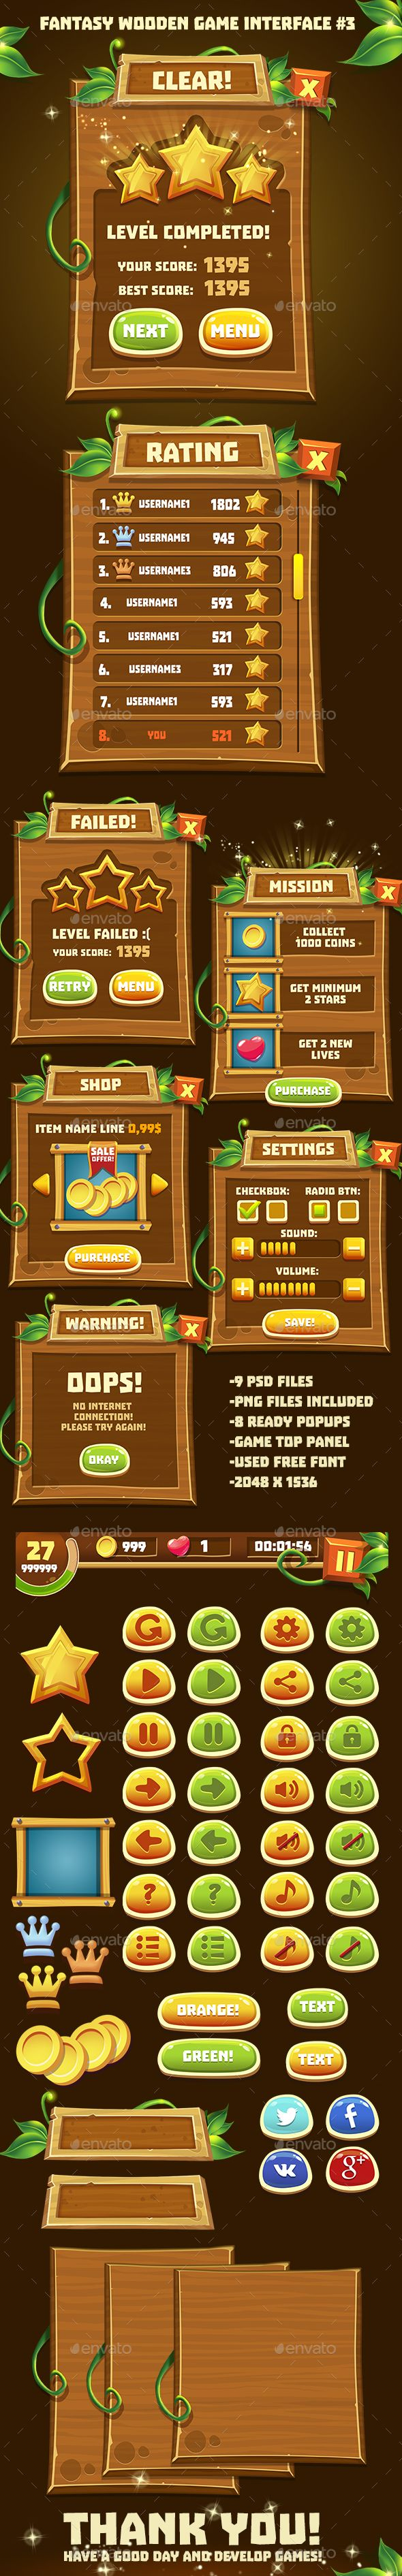 Fantasy Wooden Game Interface #3